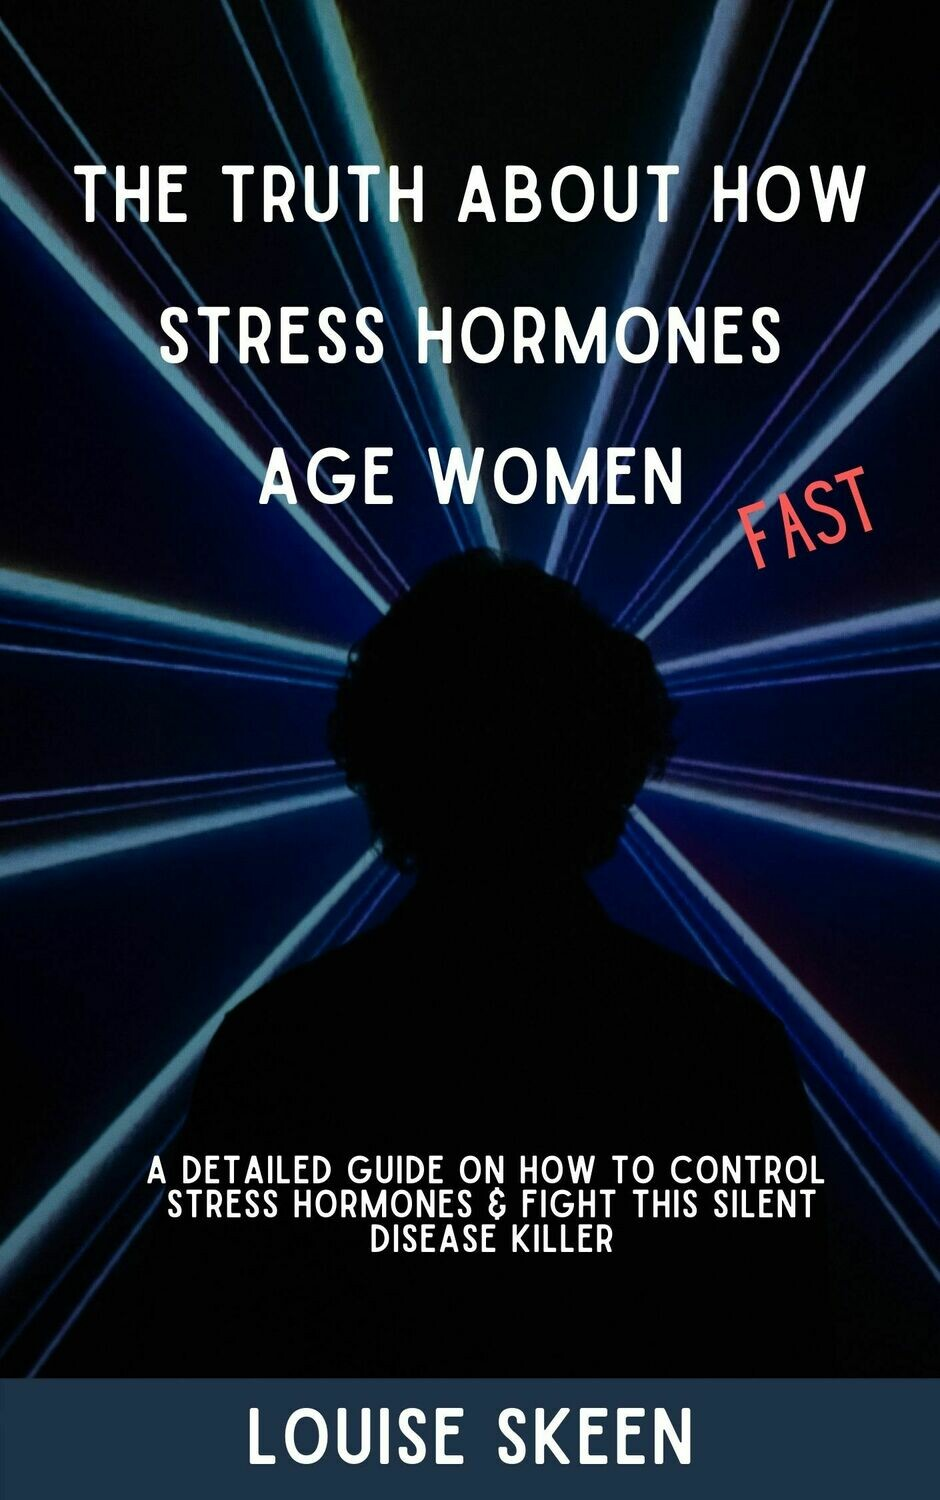 The Truth About How Stress Hormones Age Women Fast